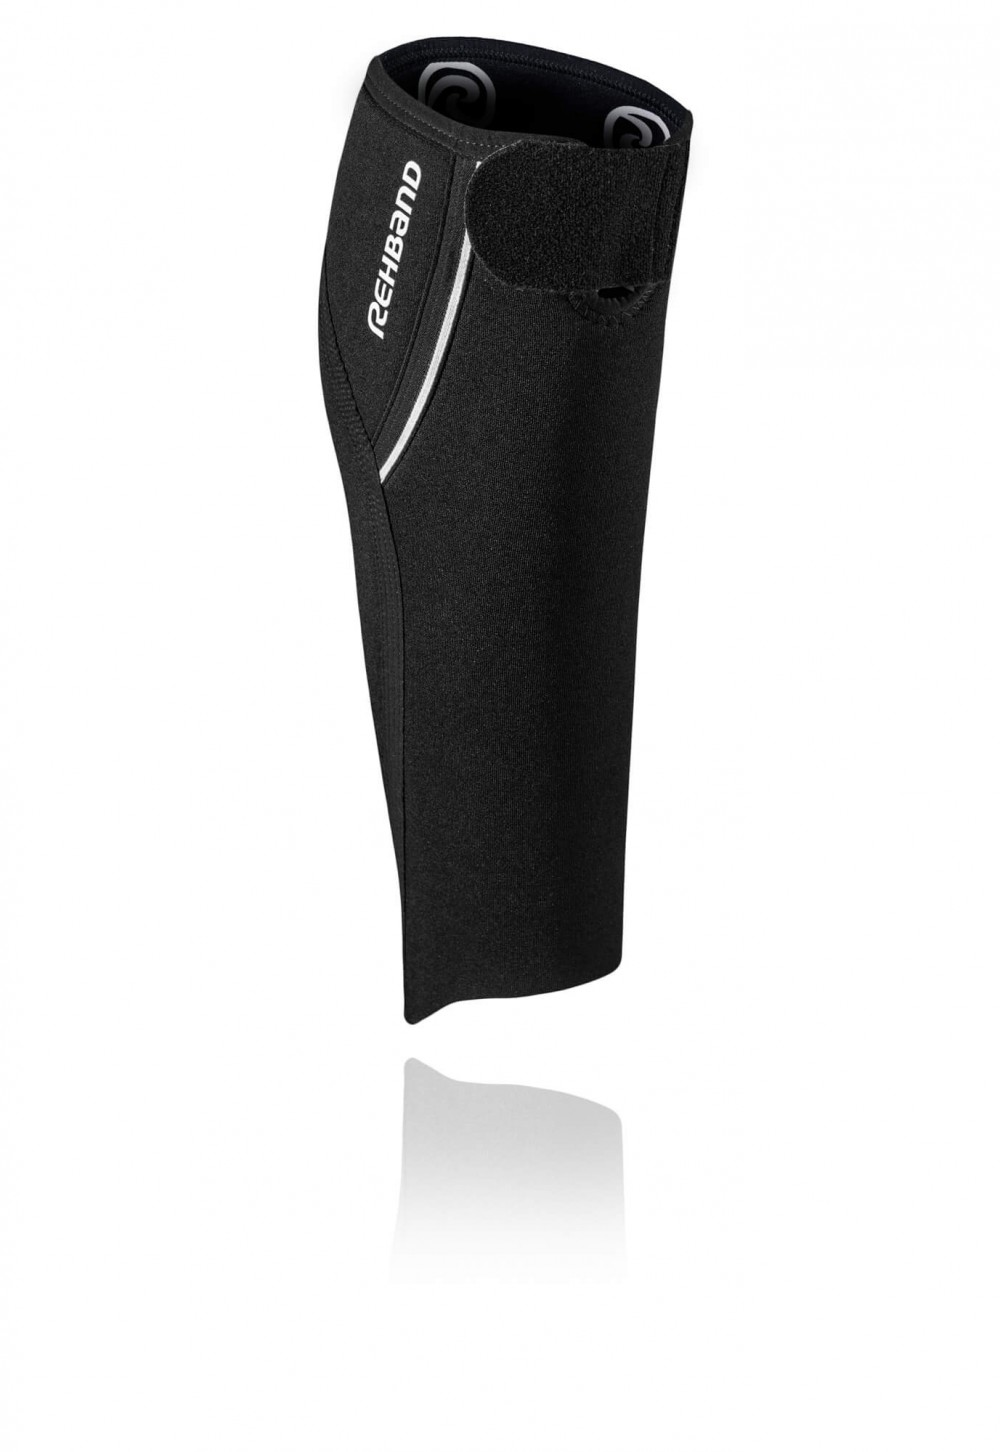 QD Shin & Calf Sleeve 5mm